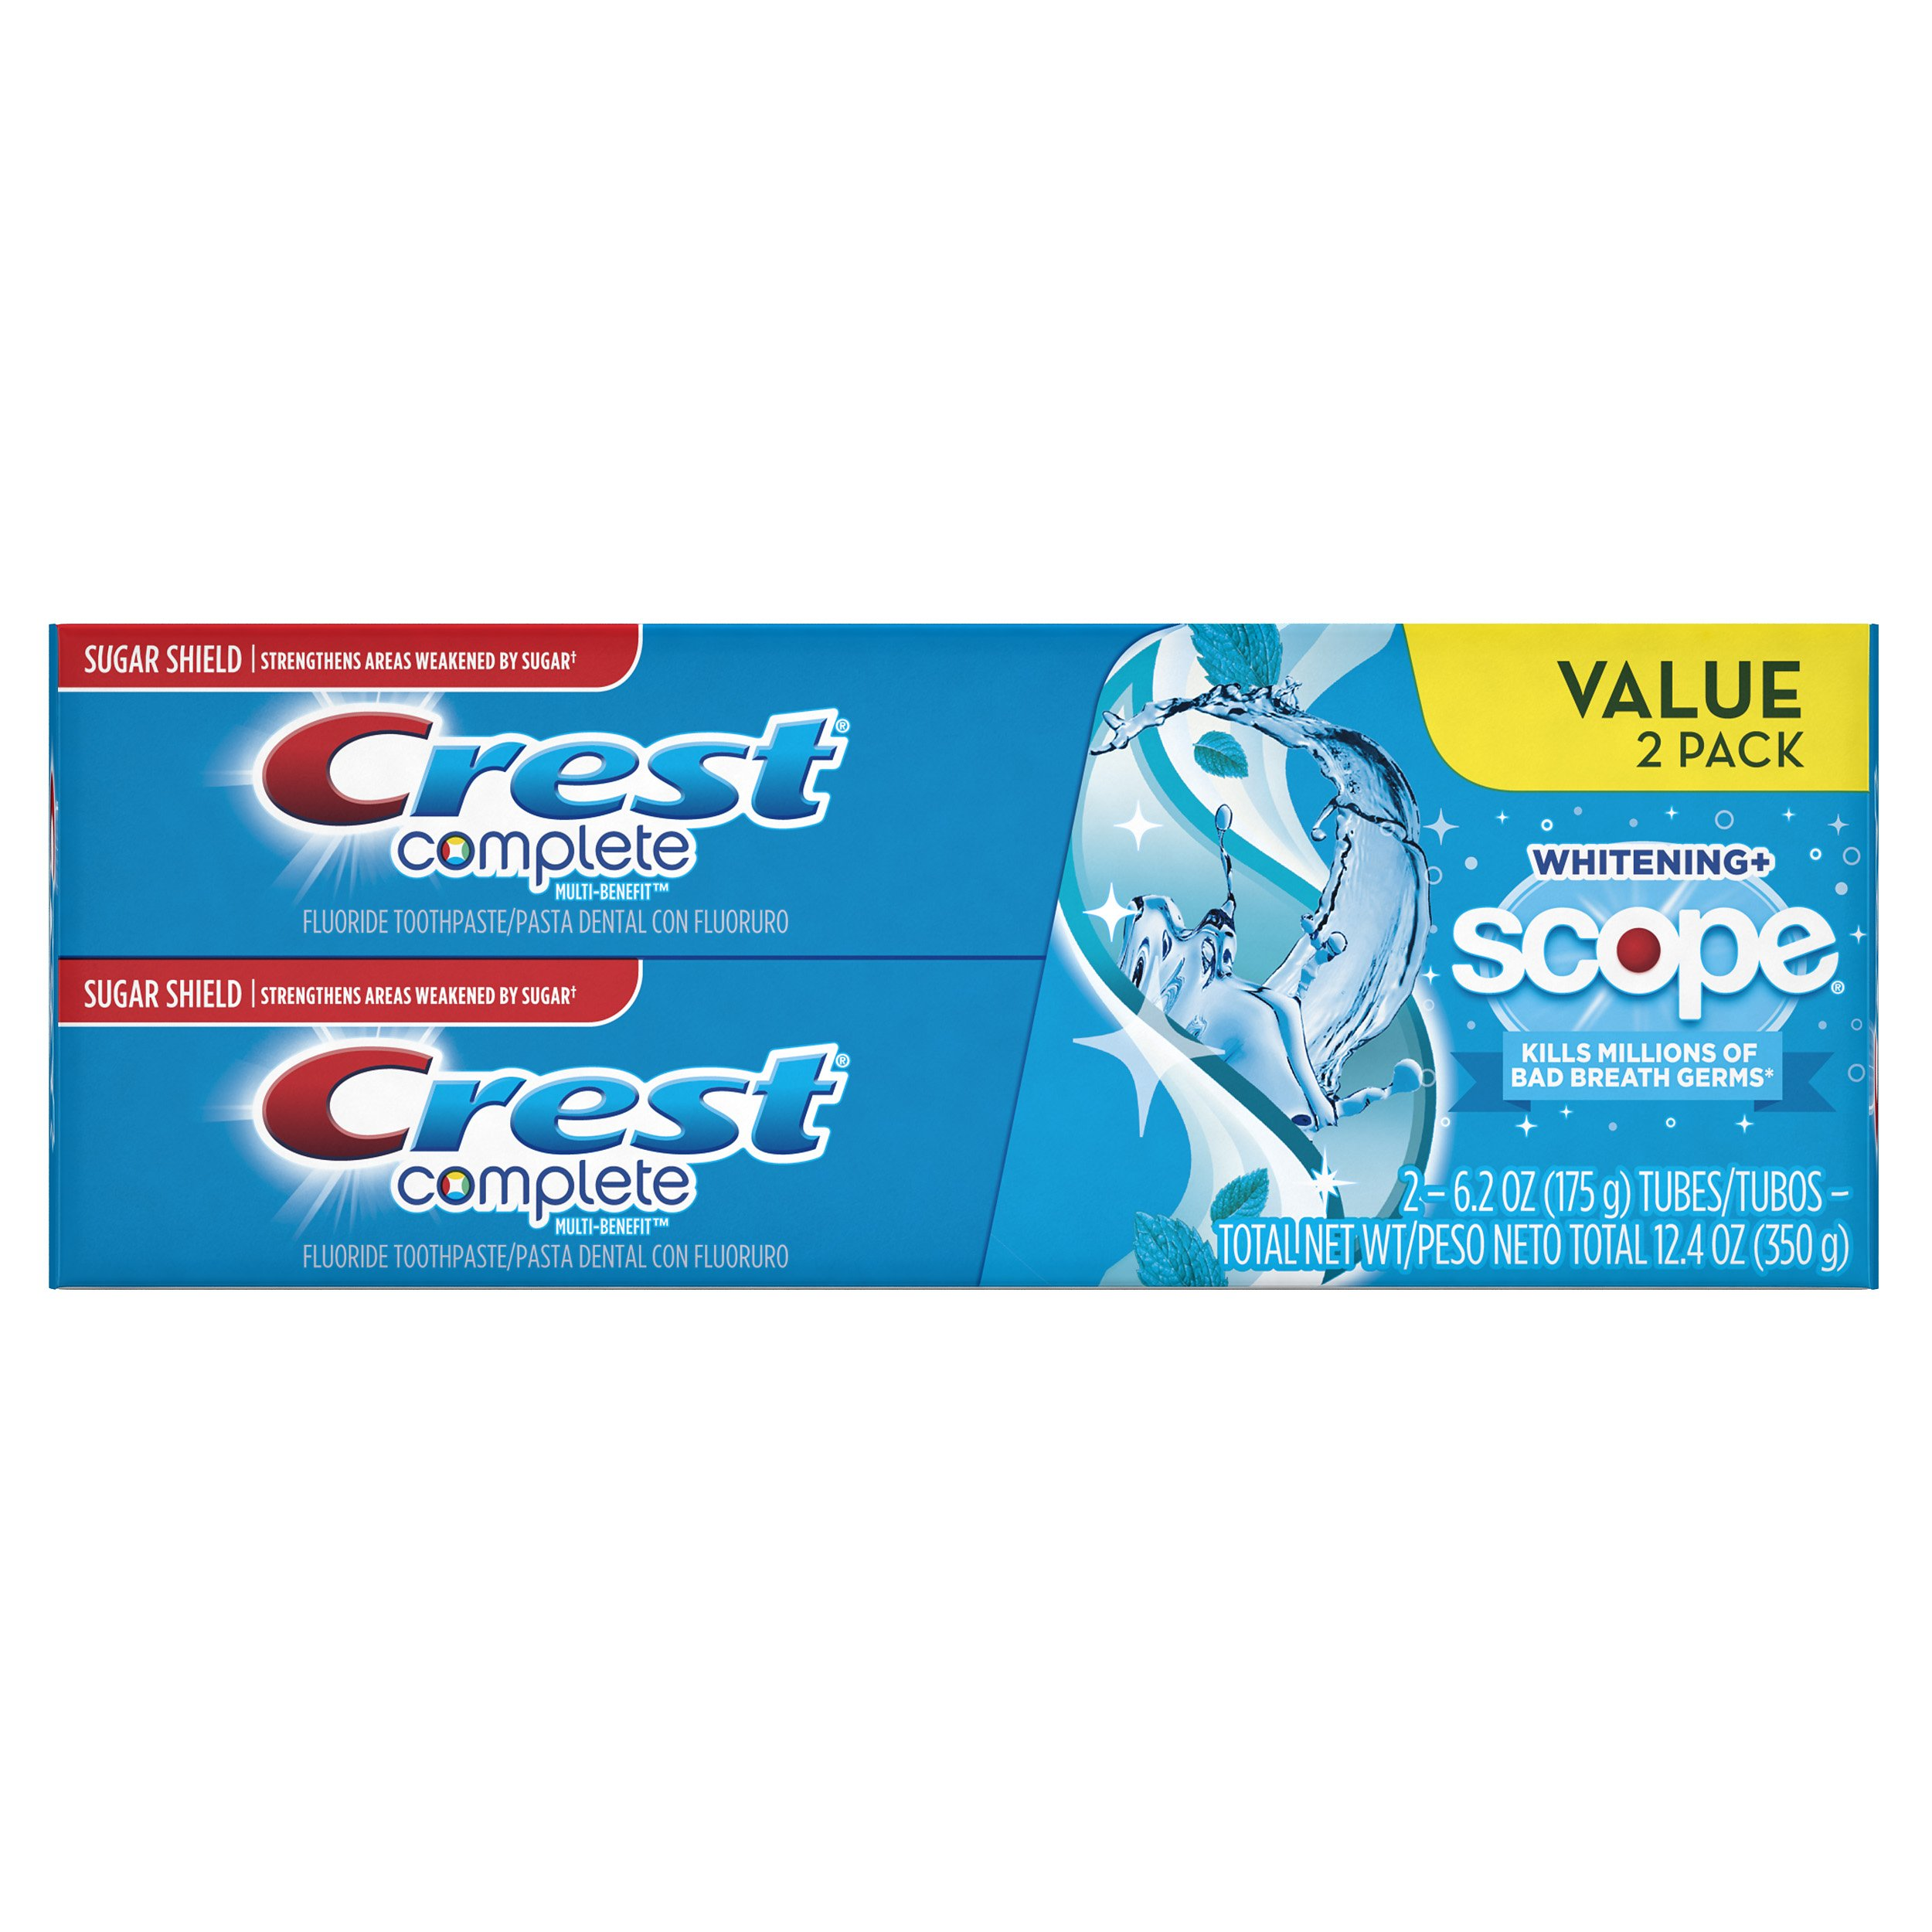 Crest Complete Multi-Benefit Whitening + Scope Toothpaste, Peppermint Flavor - 6.2 Oz Ea, 2 Count